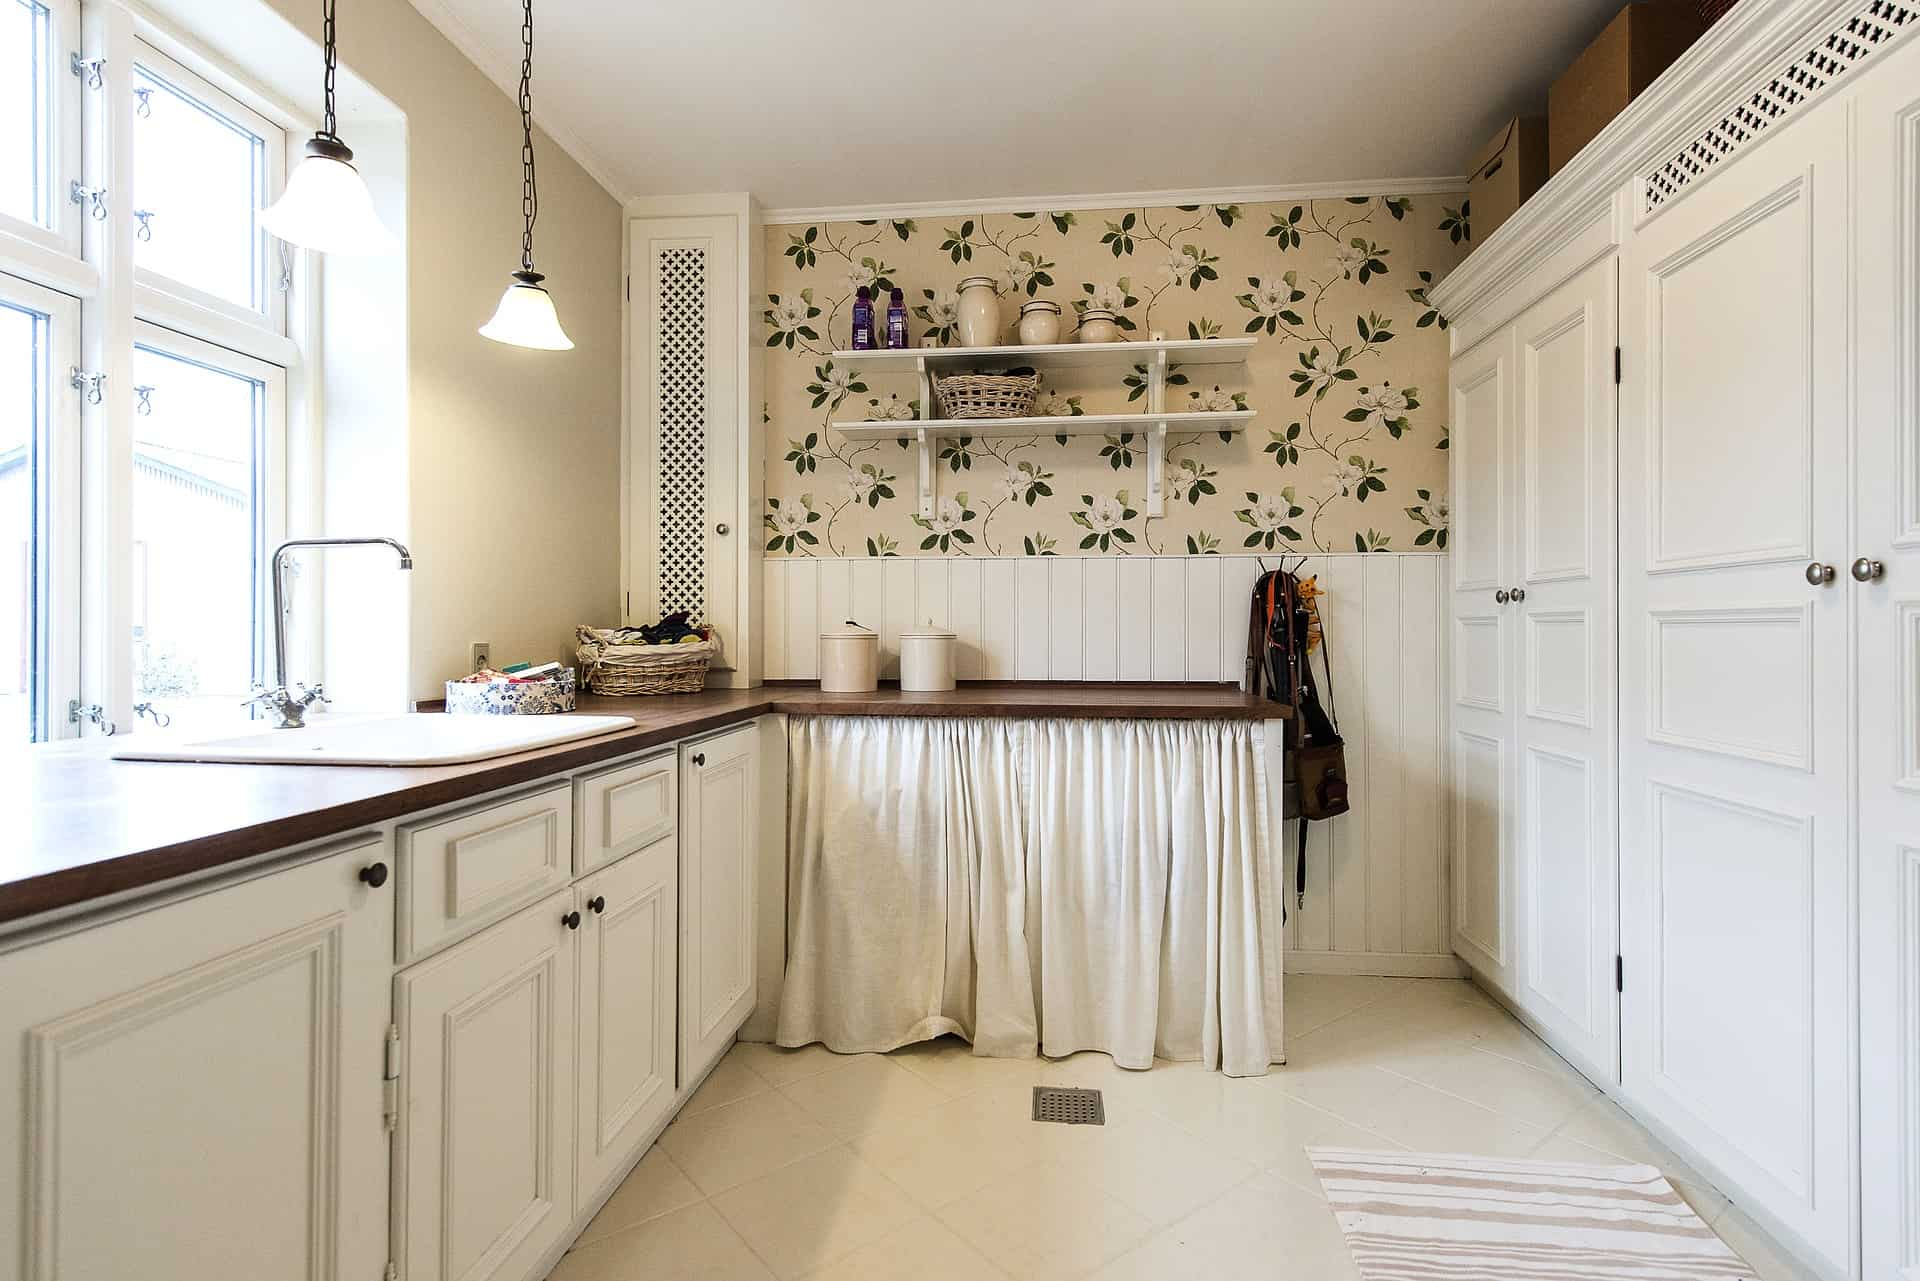 Importance Of Storage Space In Kitchen